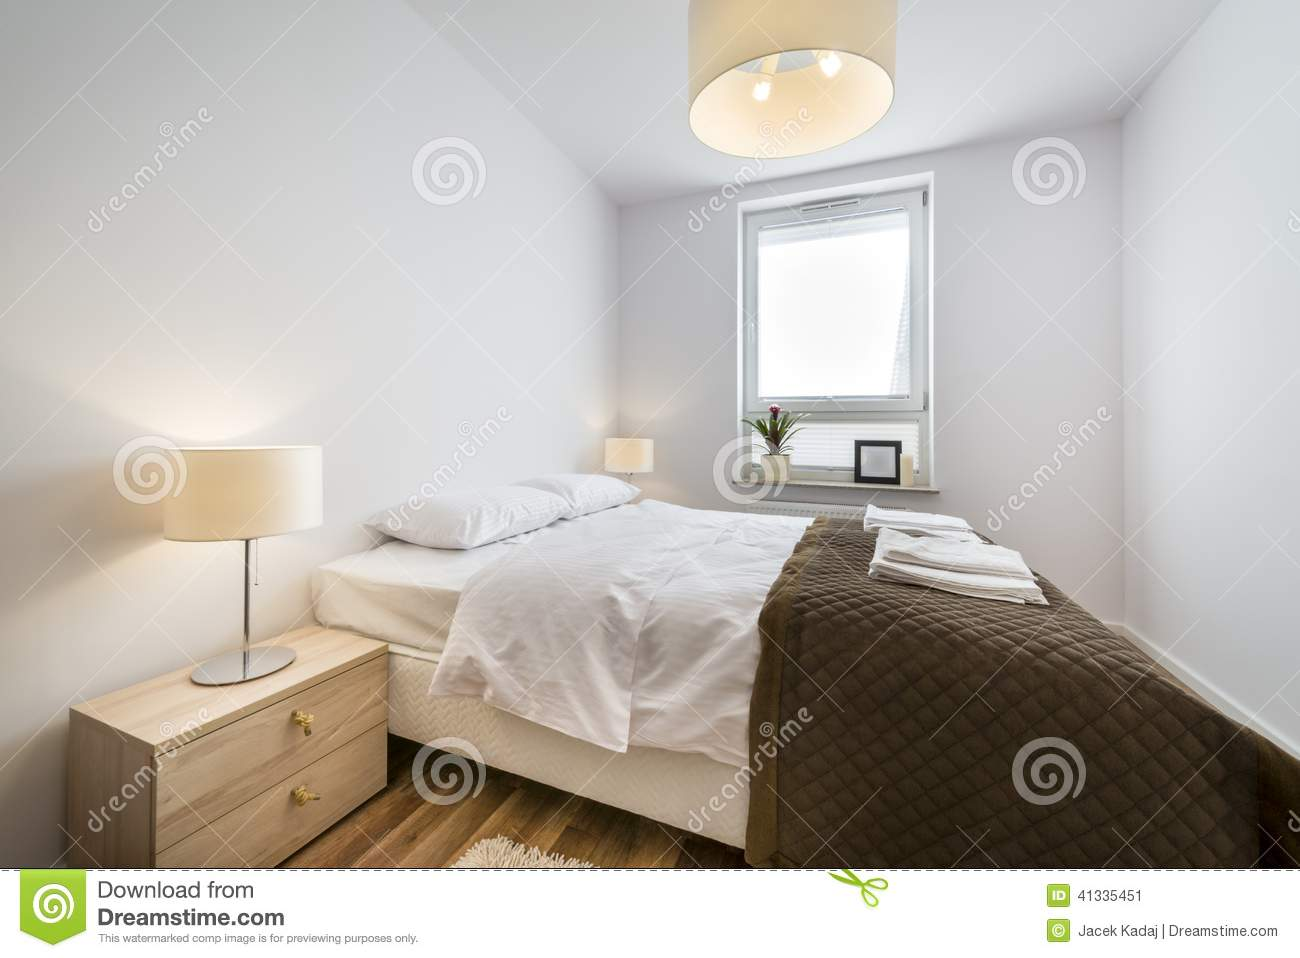 Modern scandinavian interior design bedroom stock photo Scandinavian interior design bedroom